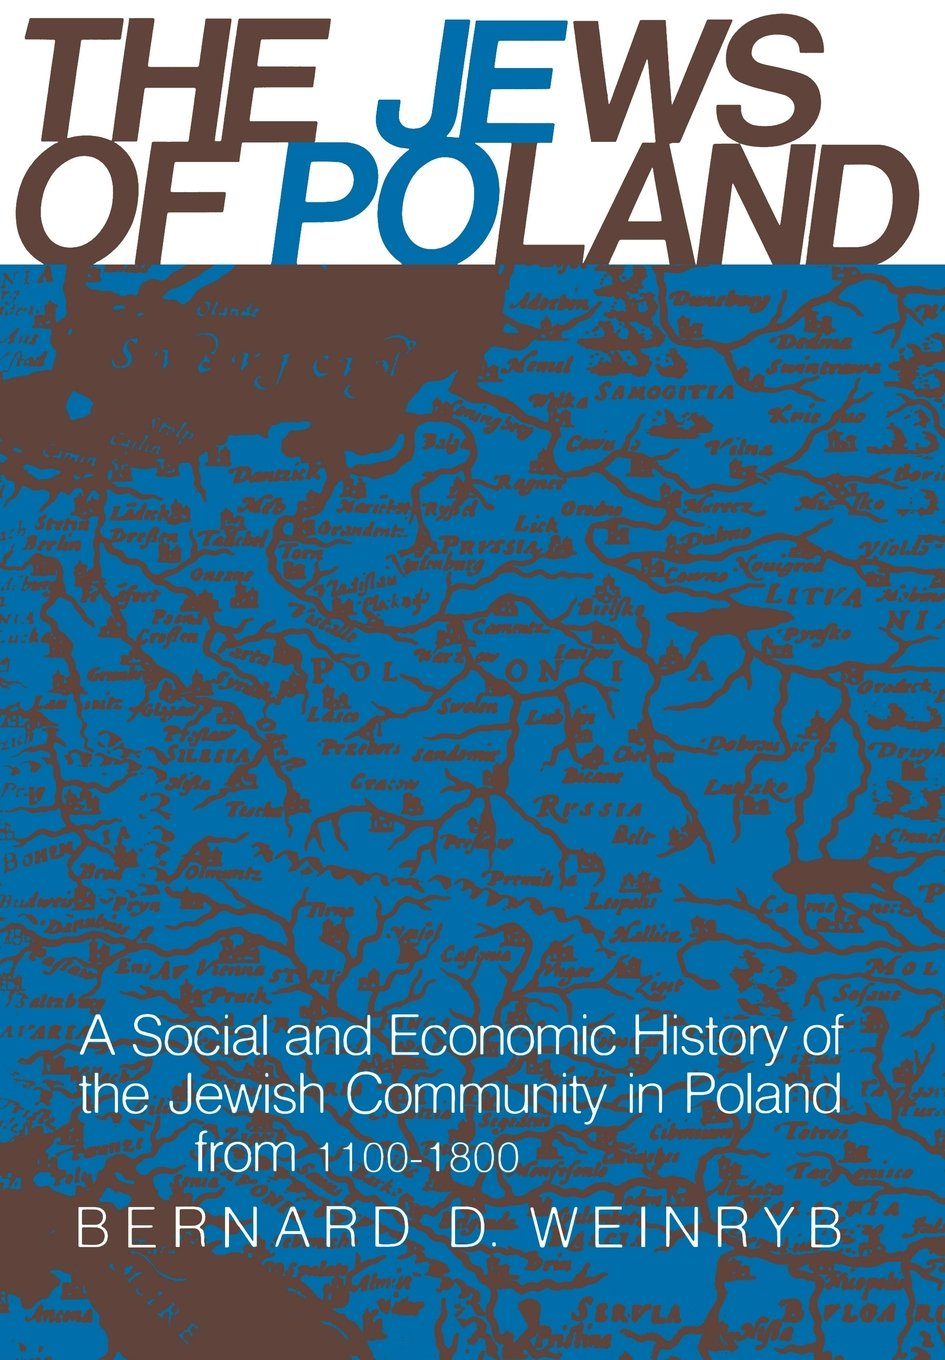 The Jews of Poland: A Social and Economic History of the Jewish Community in Poland from 1100 to 1800